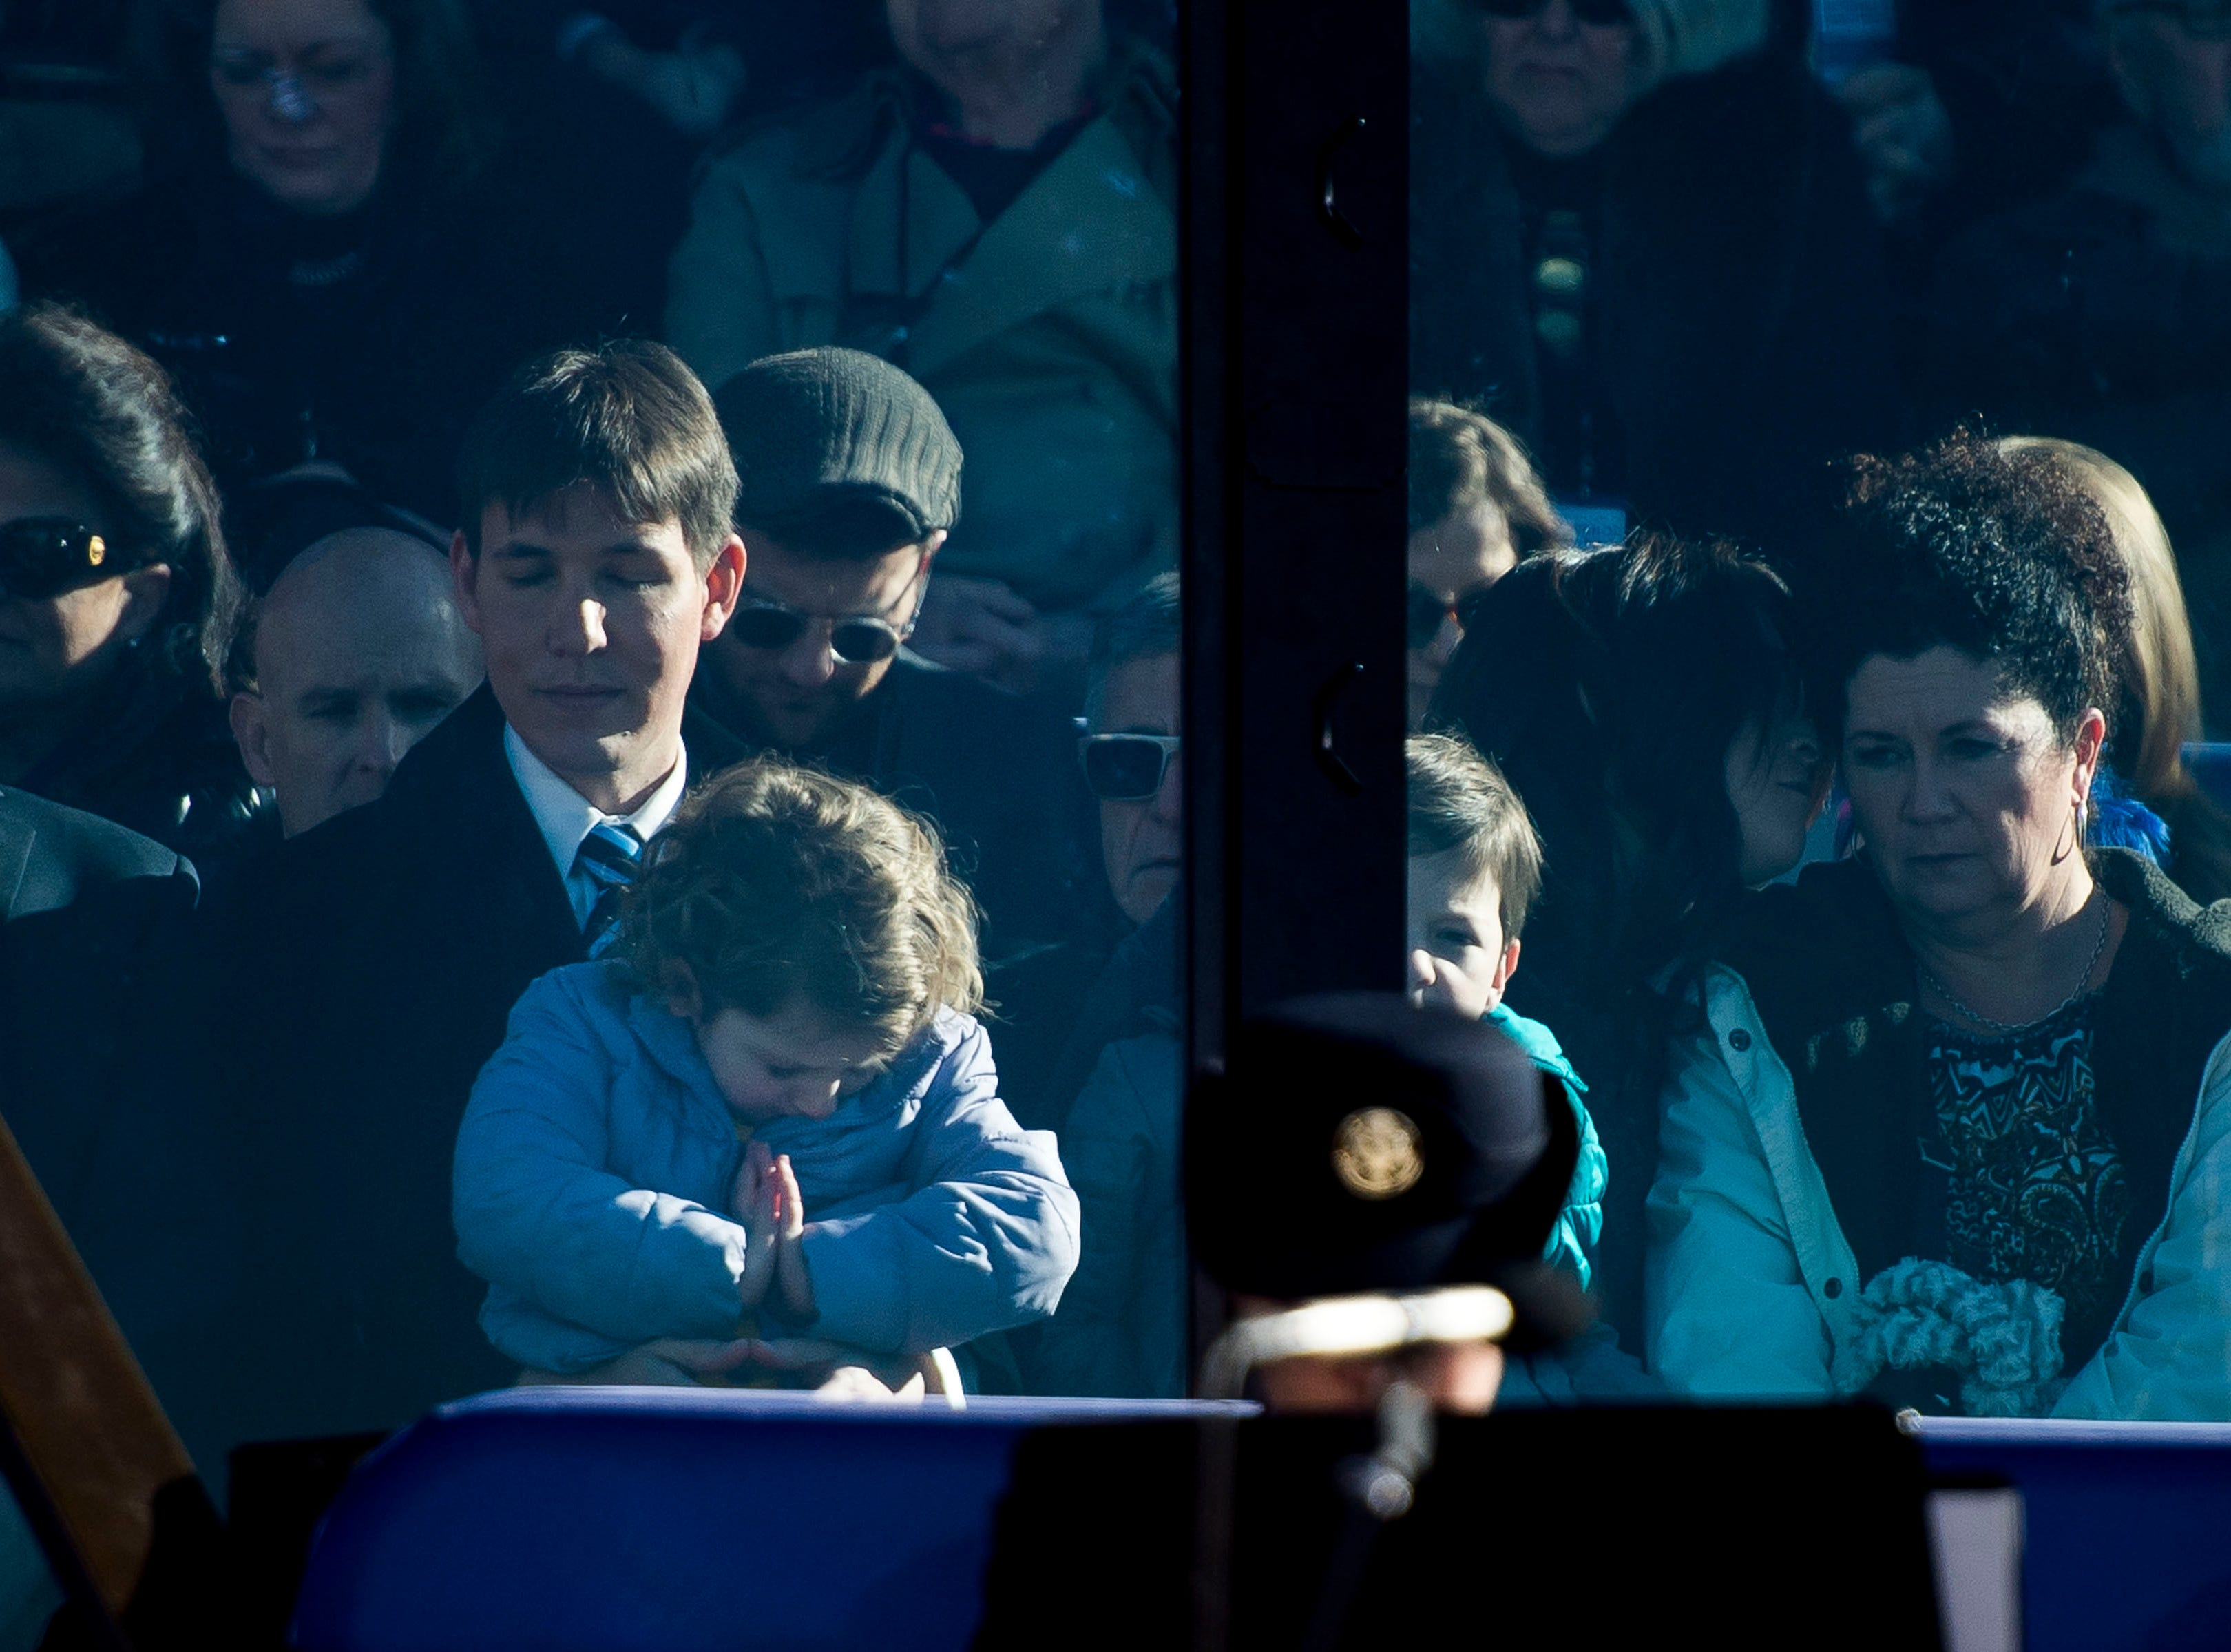 Governor Jared Polis and his partner Marlon Reis' daughter Cora Barucha Polis Reis, 4, prays while sitting on Marlon's lap at the beginning of the inauguration of Colorado State Governor Jared Polis on Tuesday, Jan. 8, 2019, in front of the Colorado State Capital building in Denver, Colo.